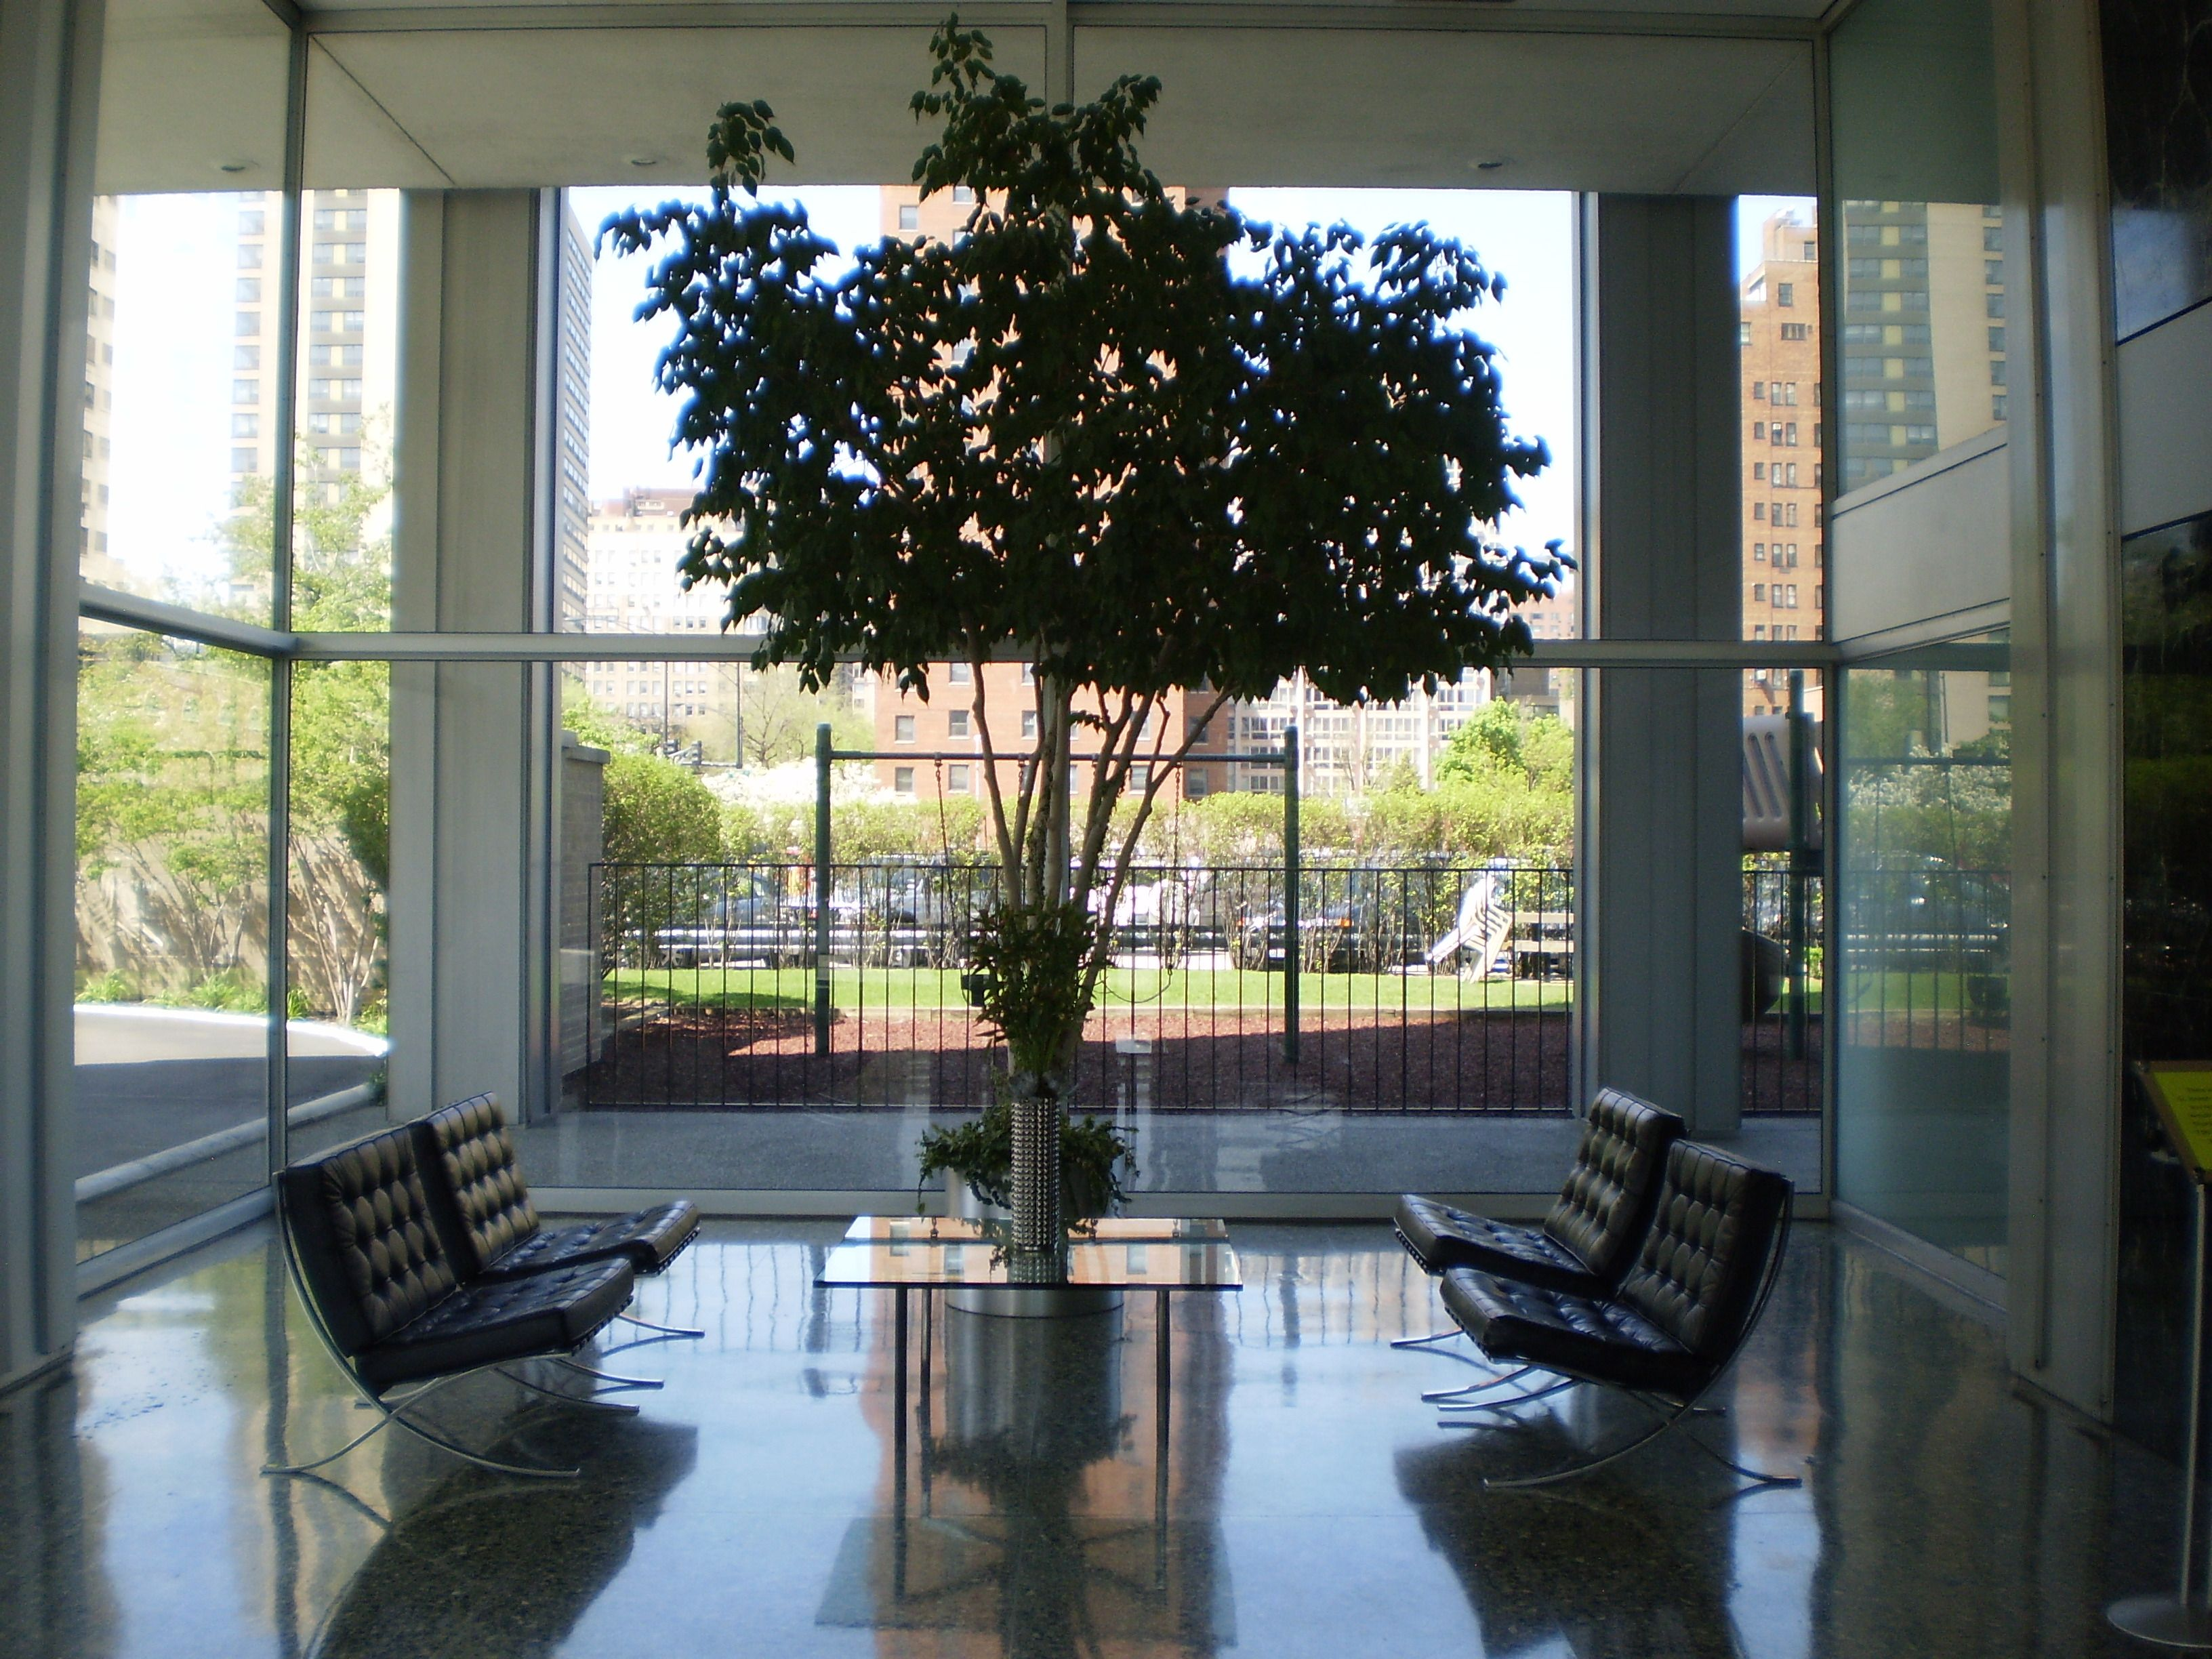 Barcelona chairs lobby - Barcelona Chairs In Lobby Of Mies Apartment Building In Chicago